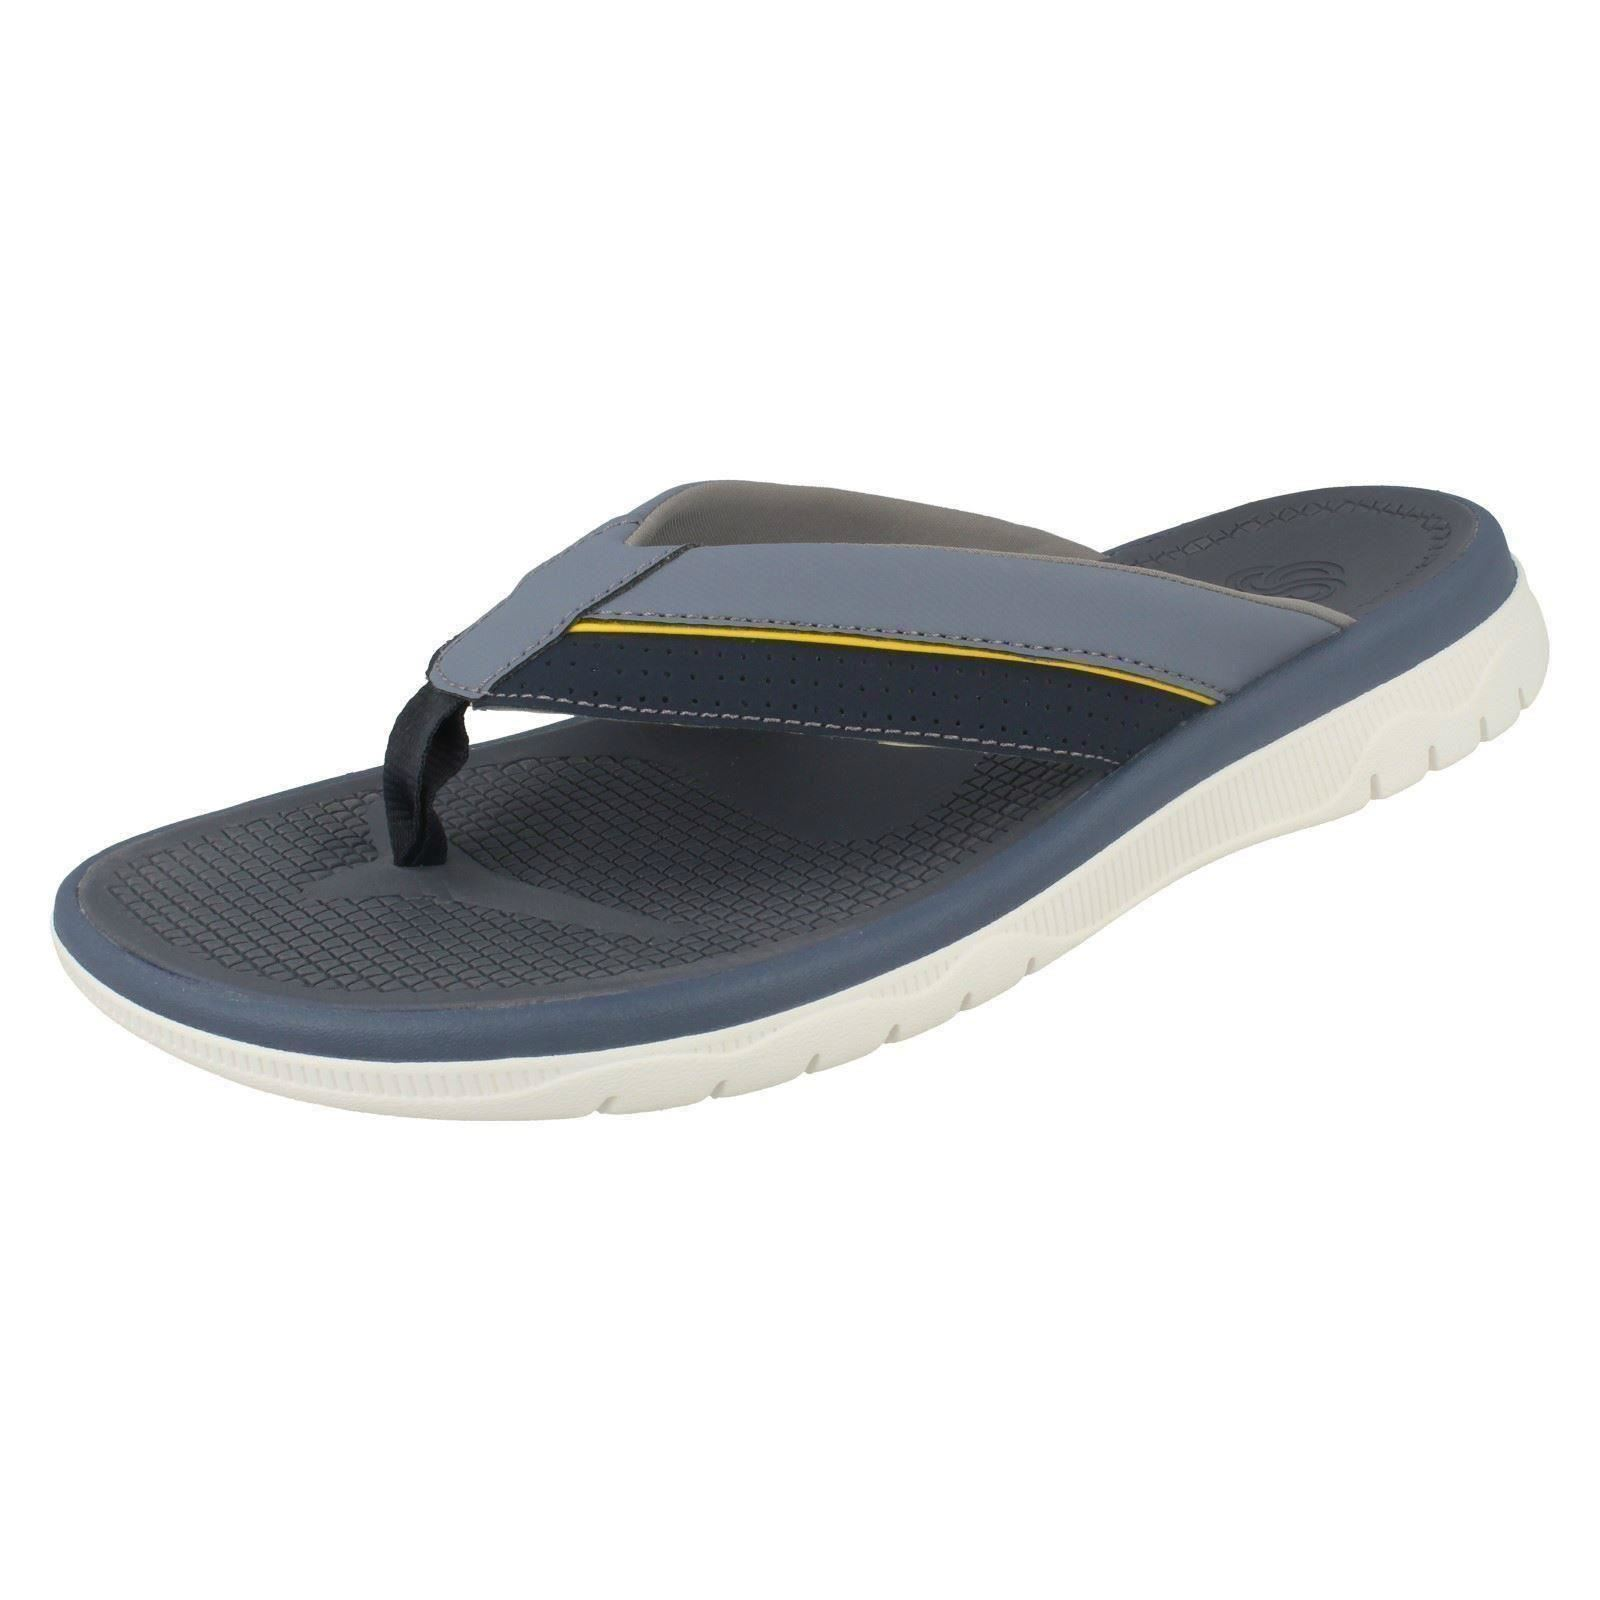 307bddba1d0 Details about Mens Cloudsteppers by Clarks Toe Post Sandals  Balta Sun